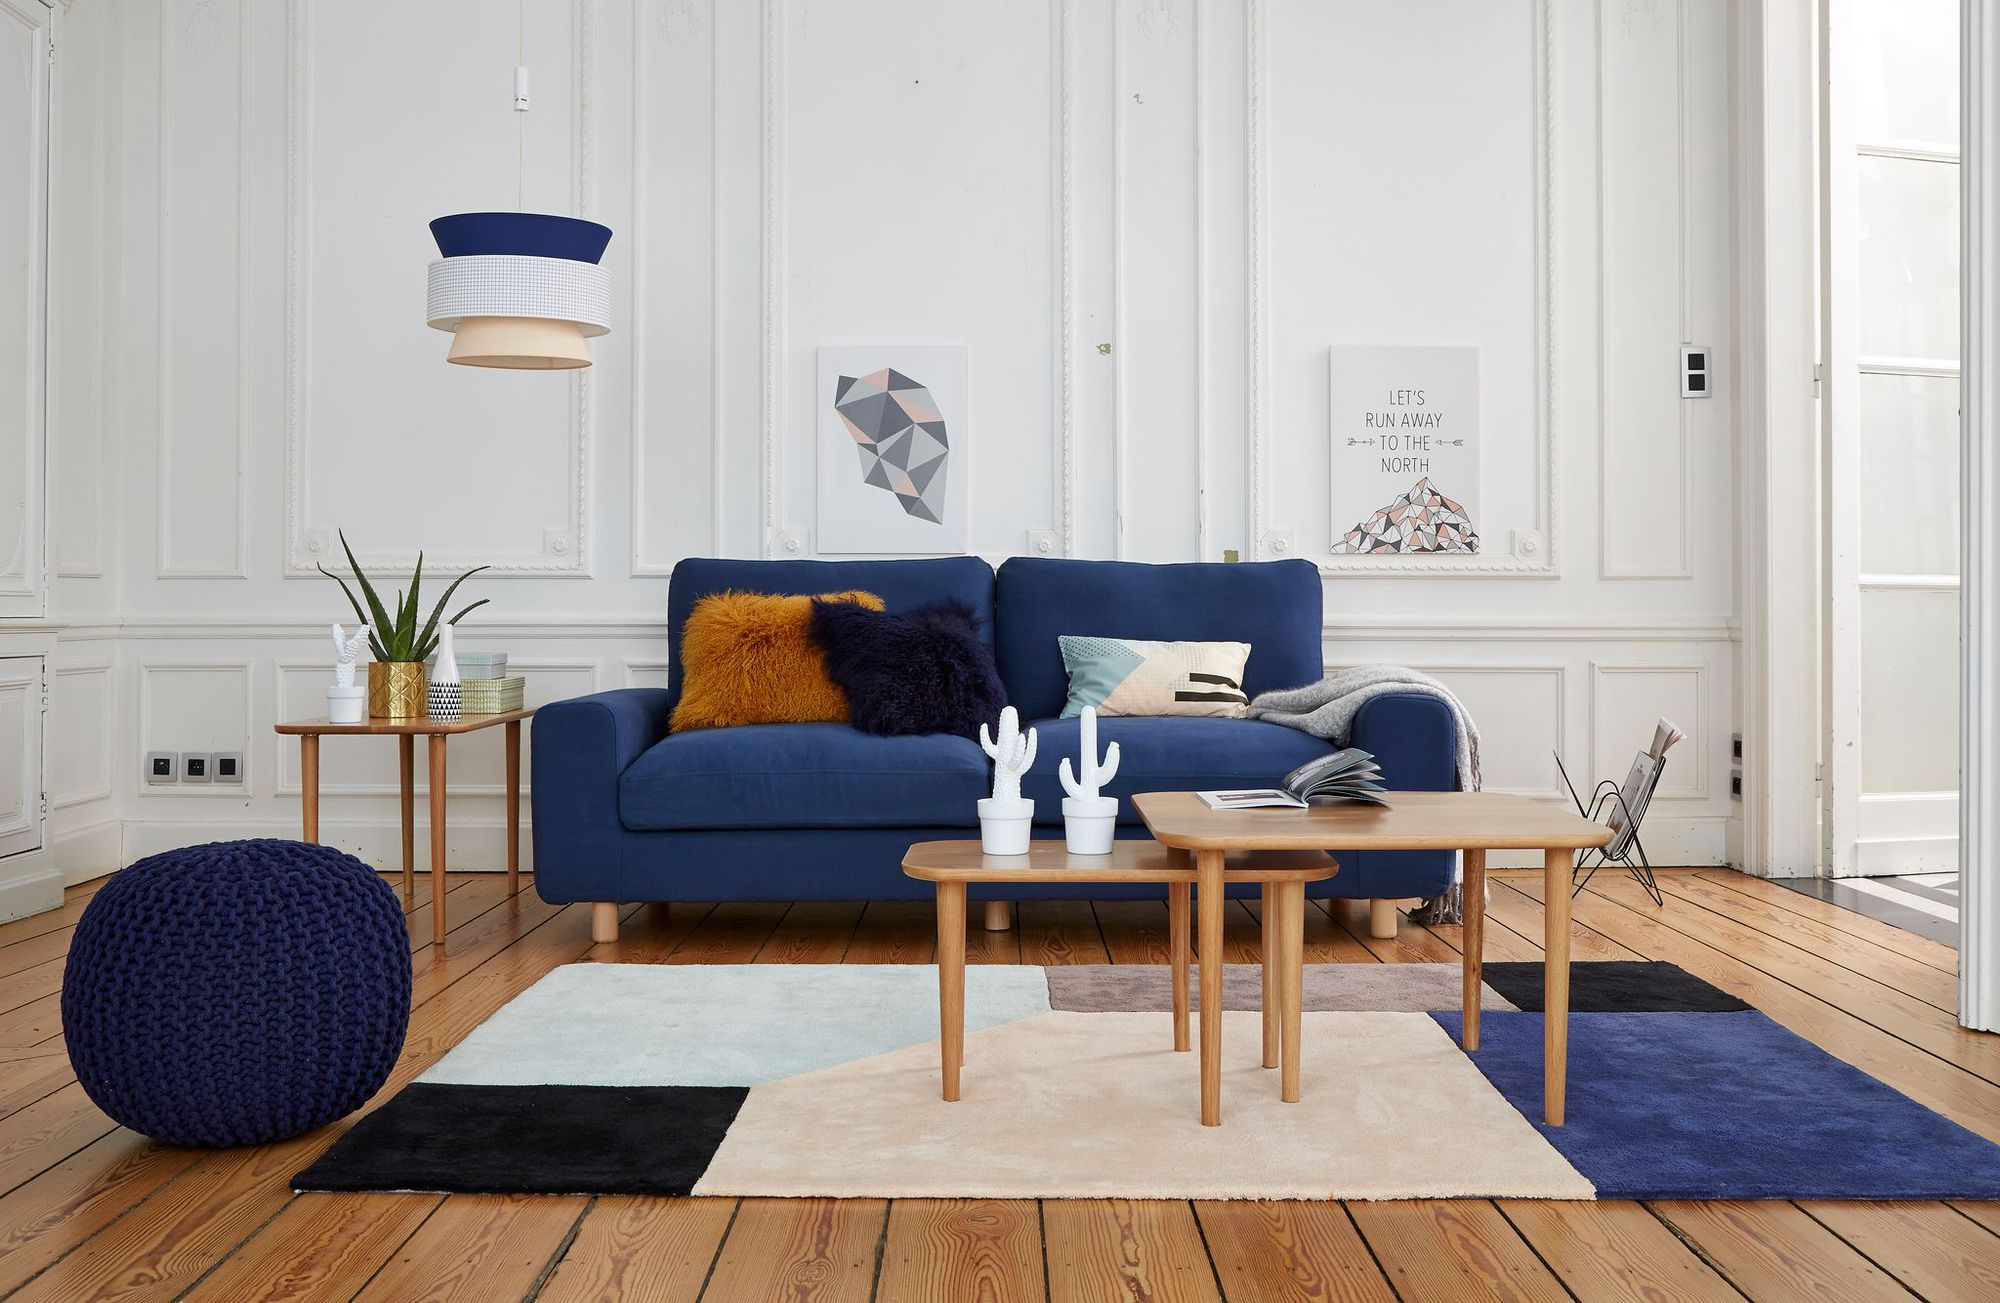 salon-contemporain-style-scandinave_5607779